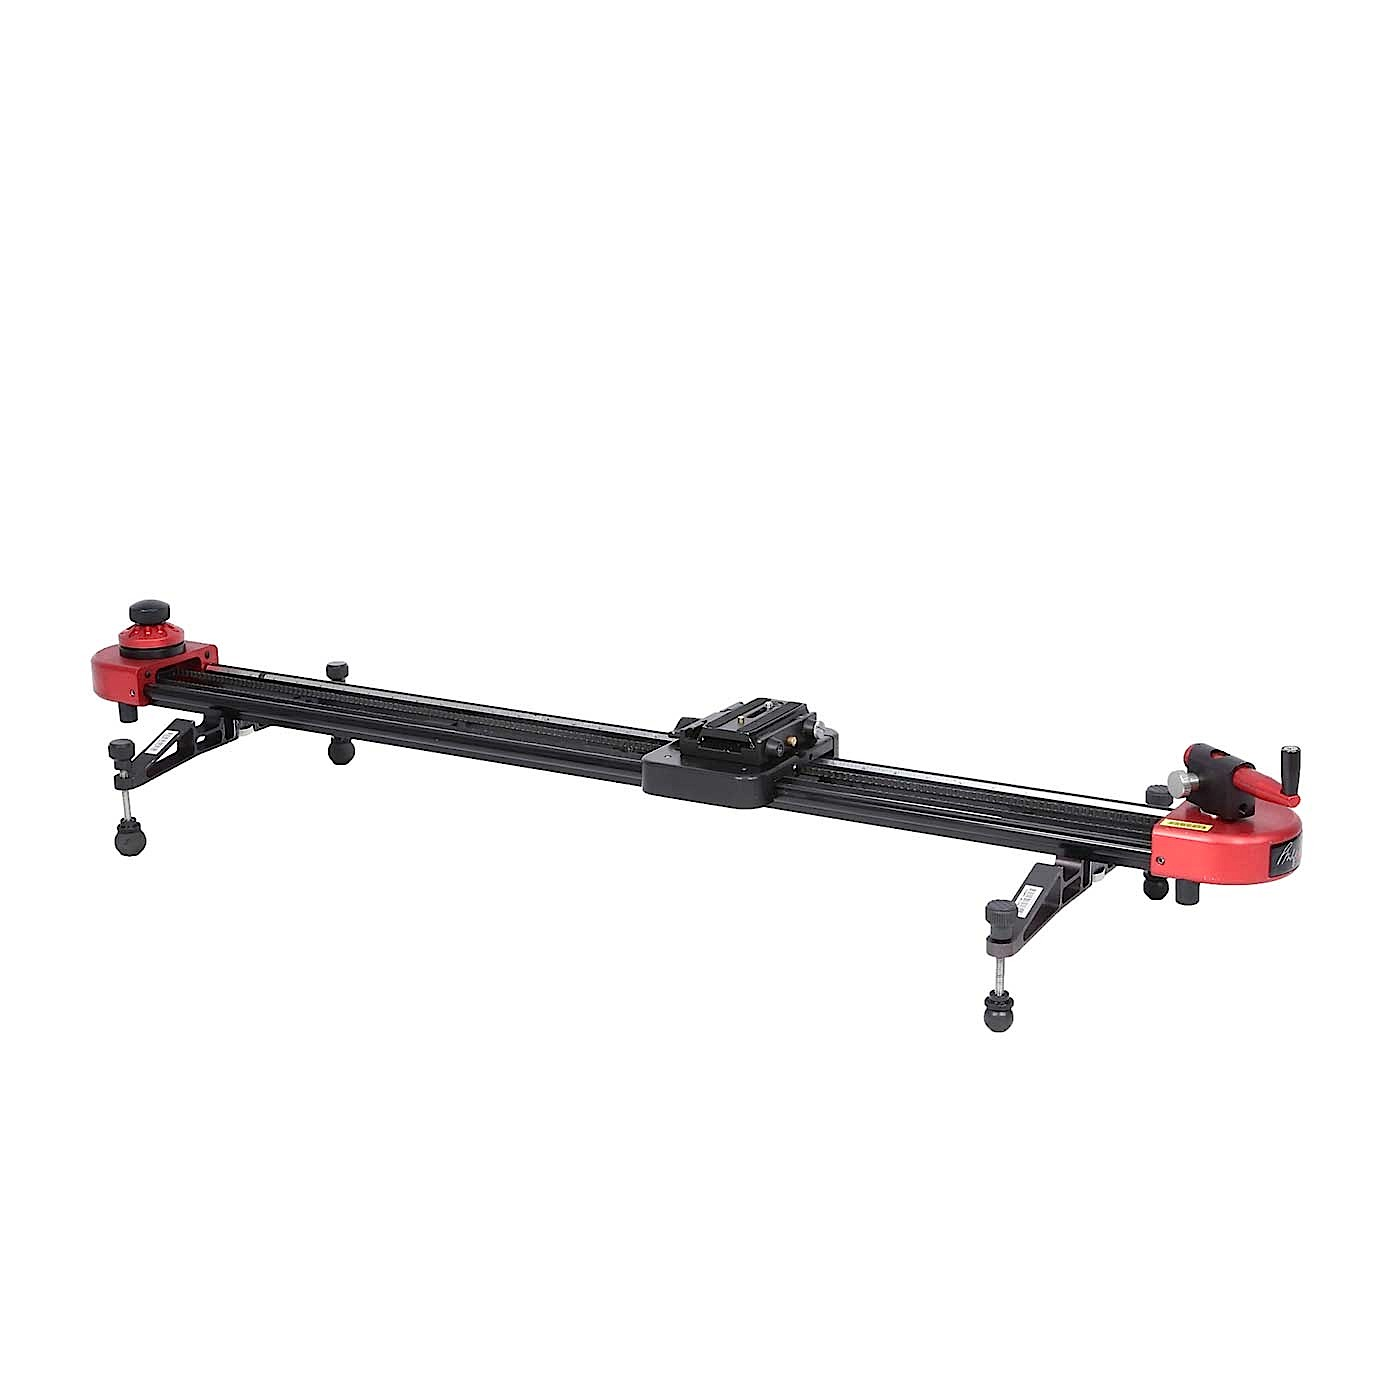 Kessler Bloom Standard Pocket Dolly